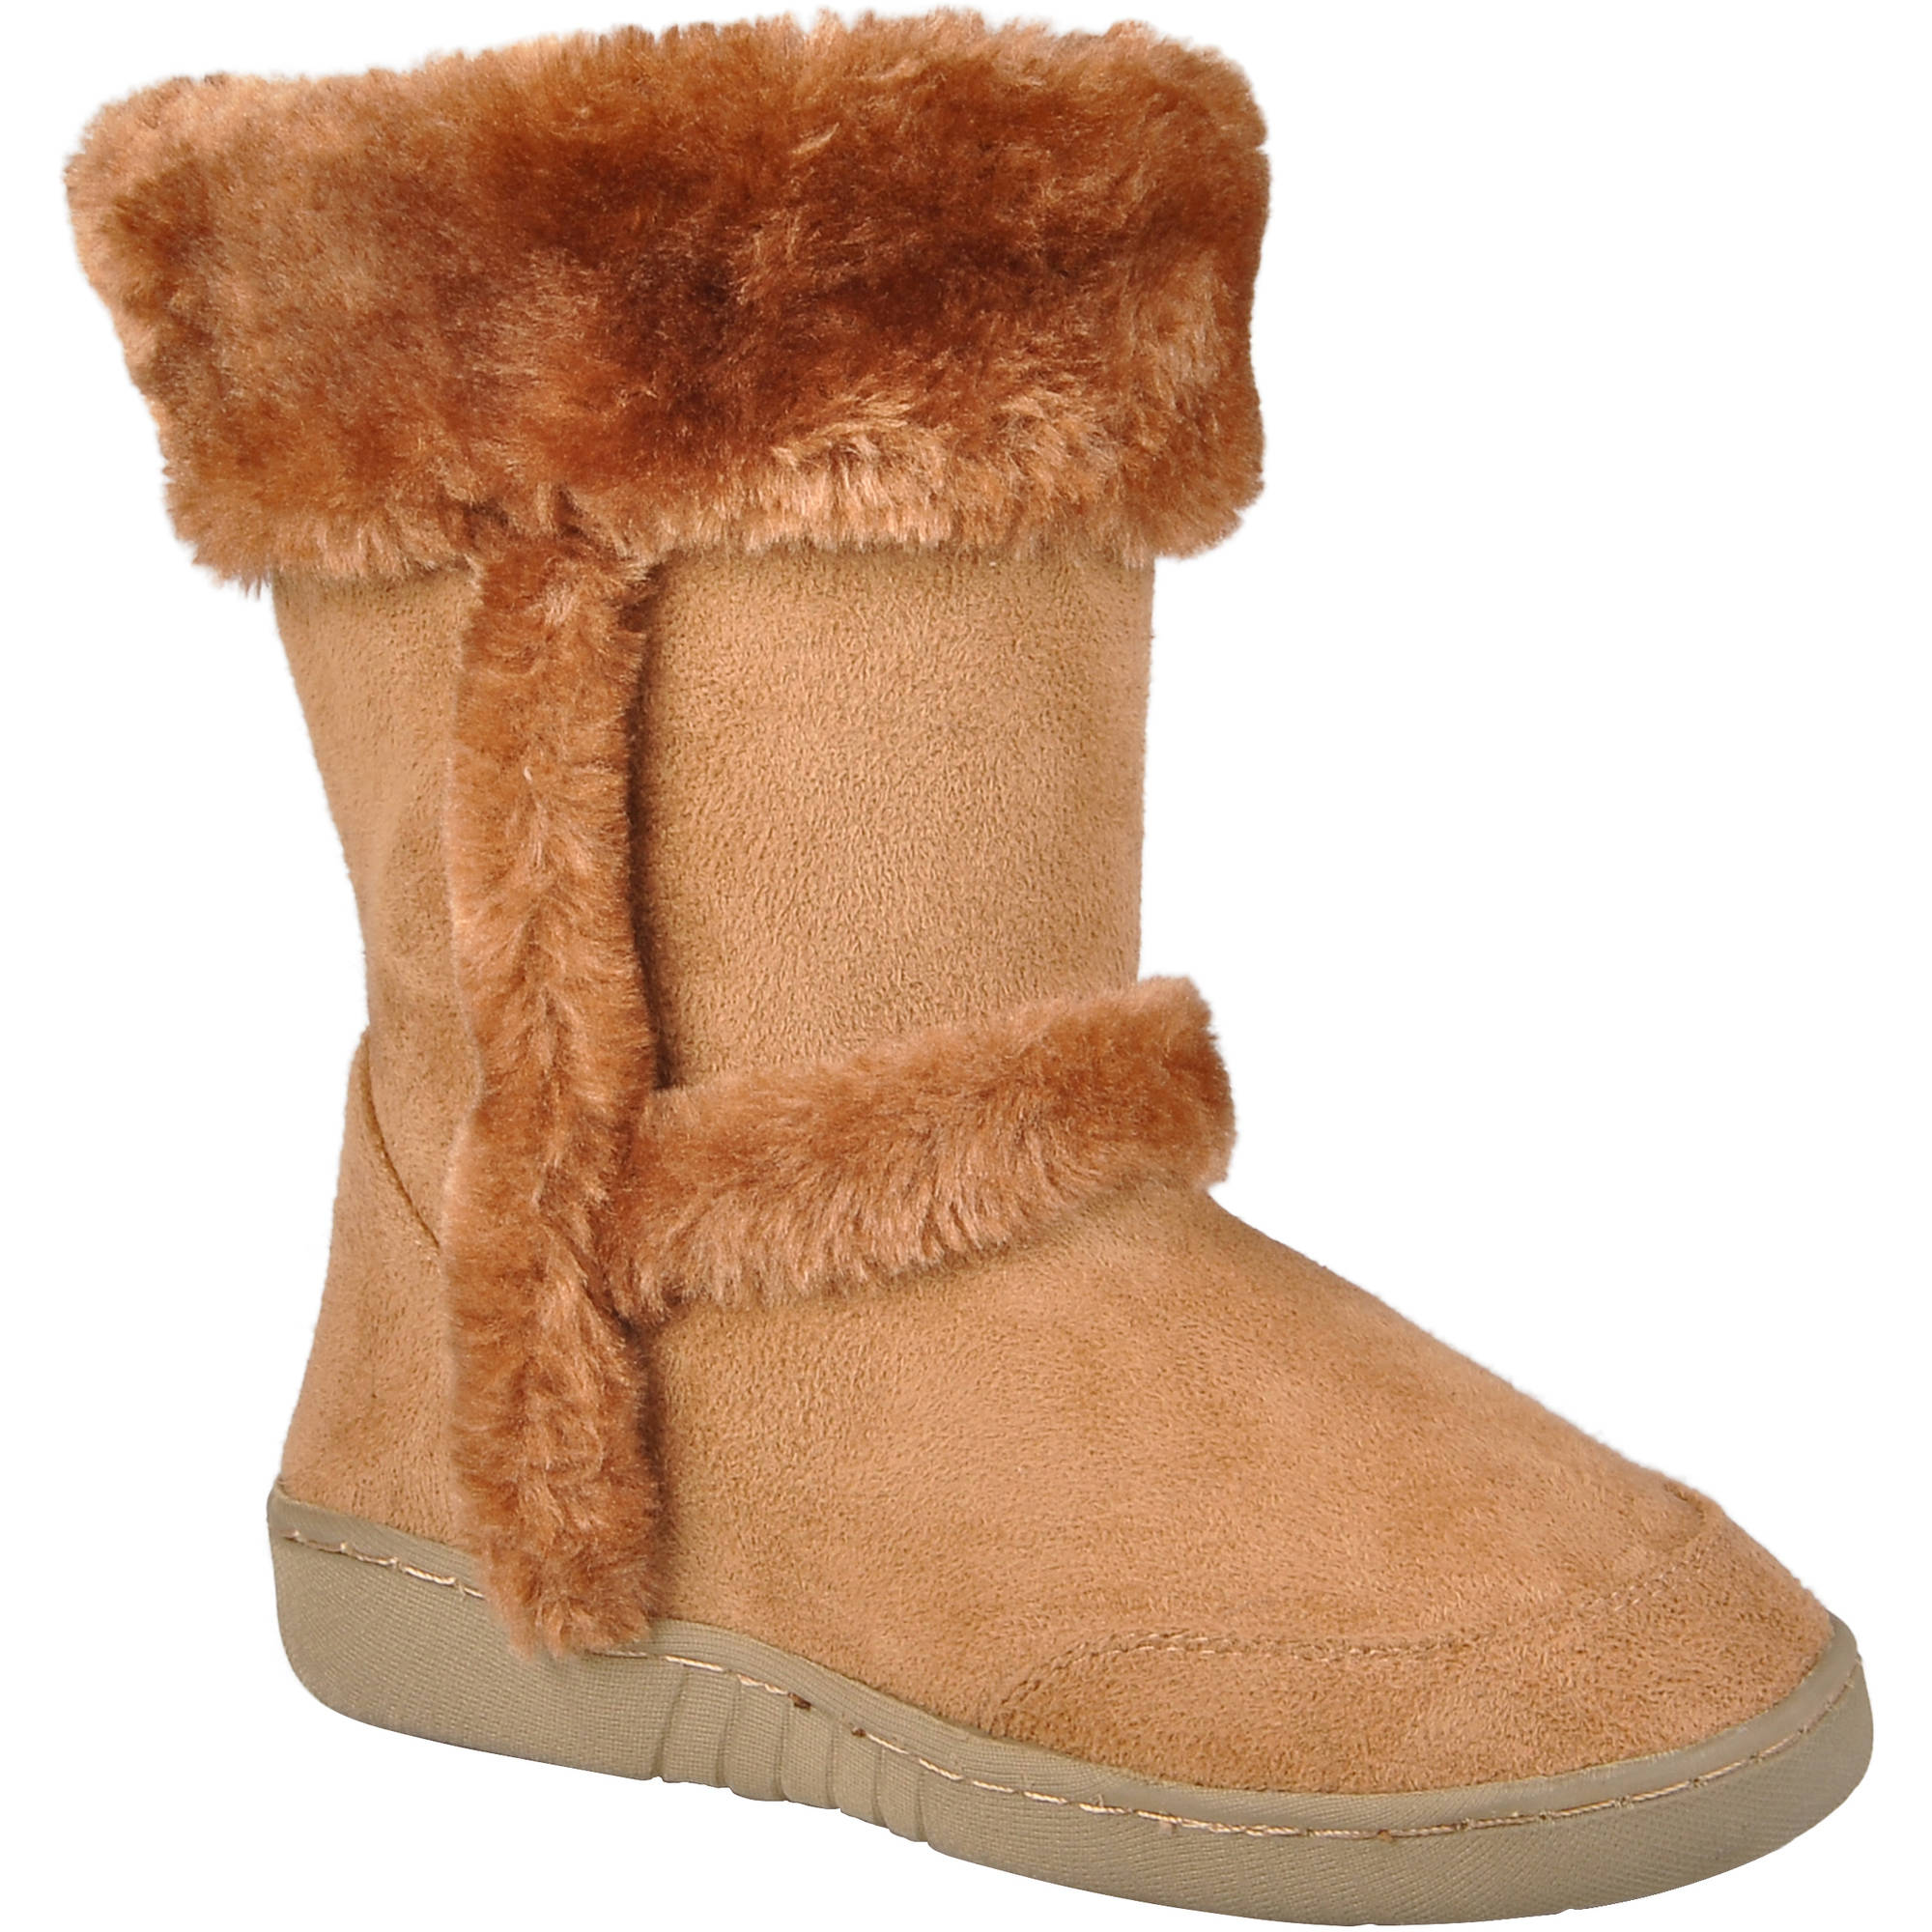 Brinley Co Girls Faux Fur Trim Boots